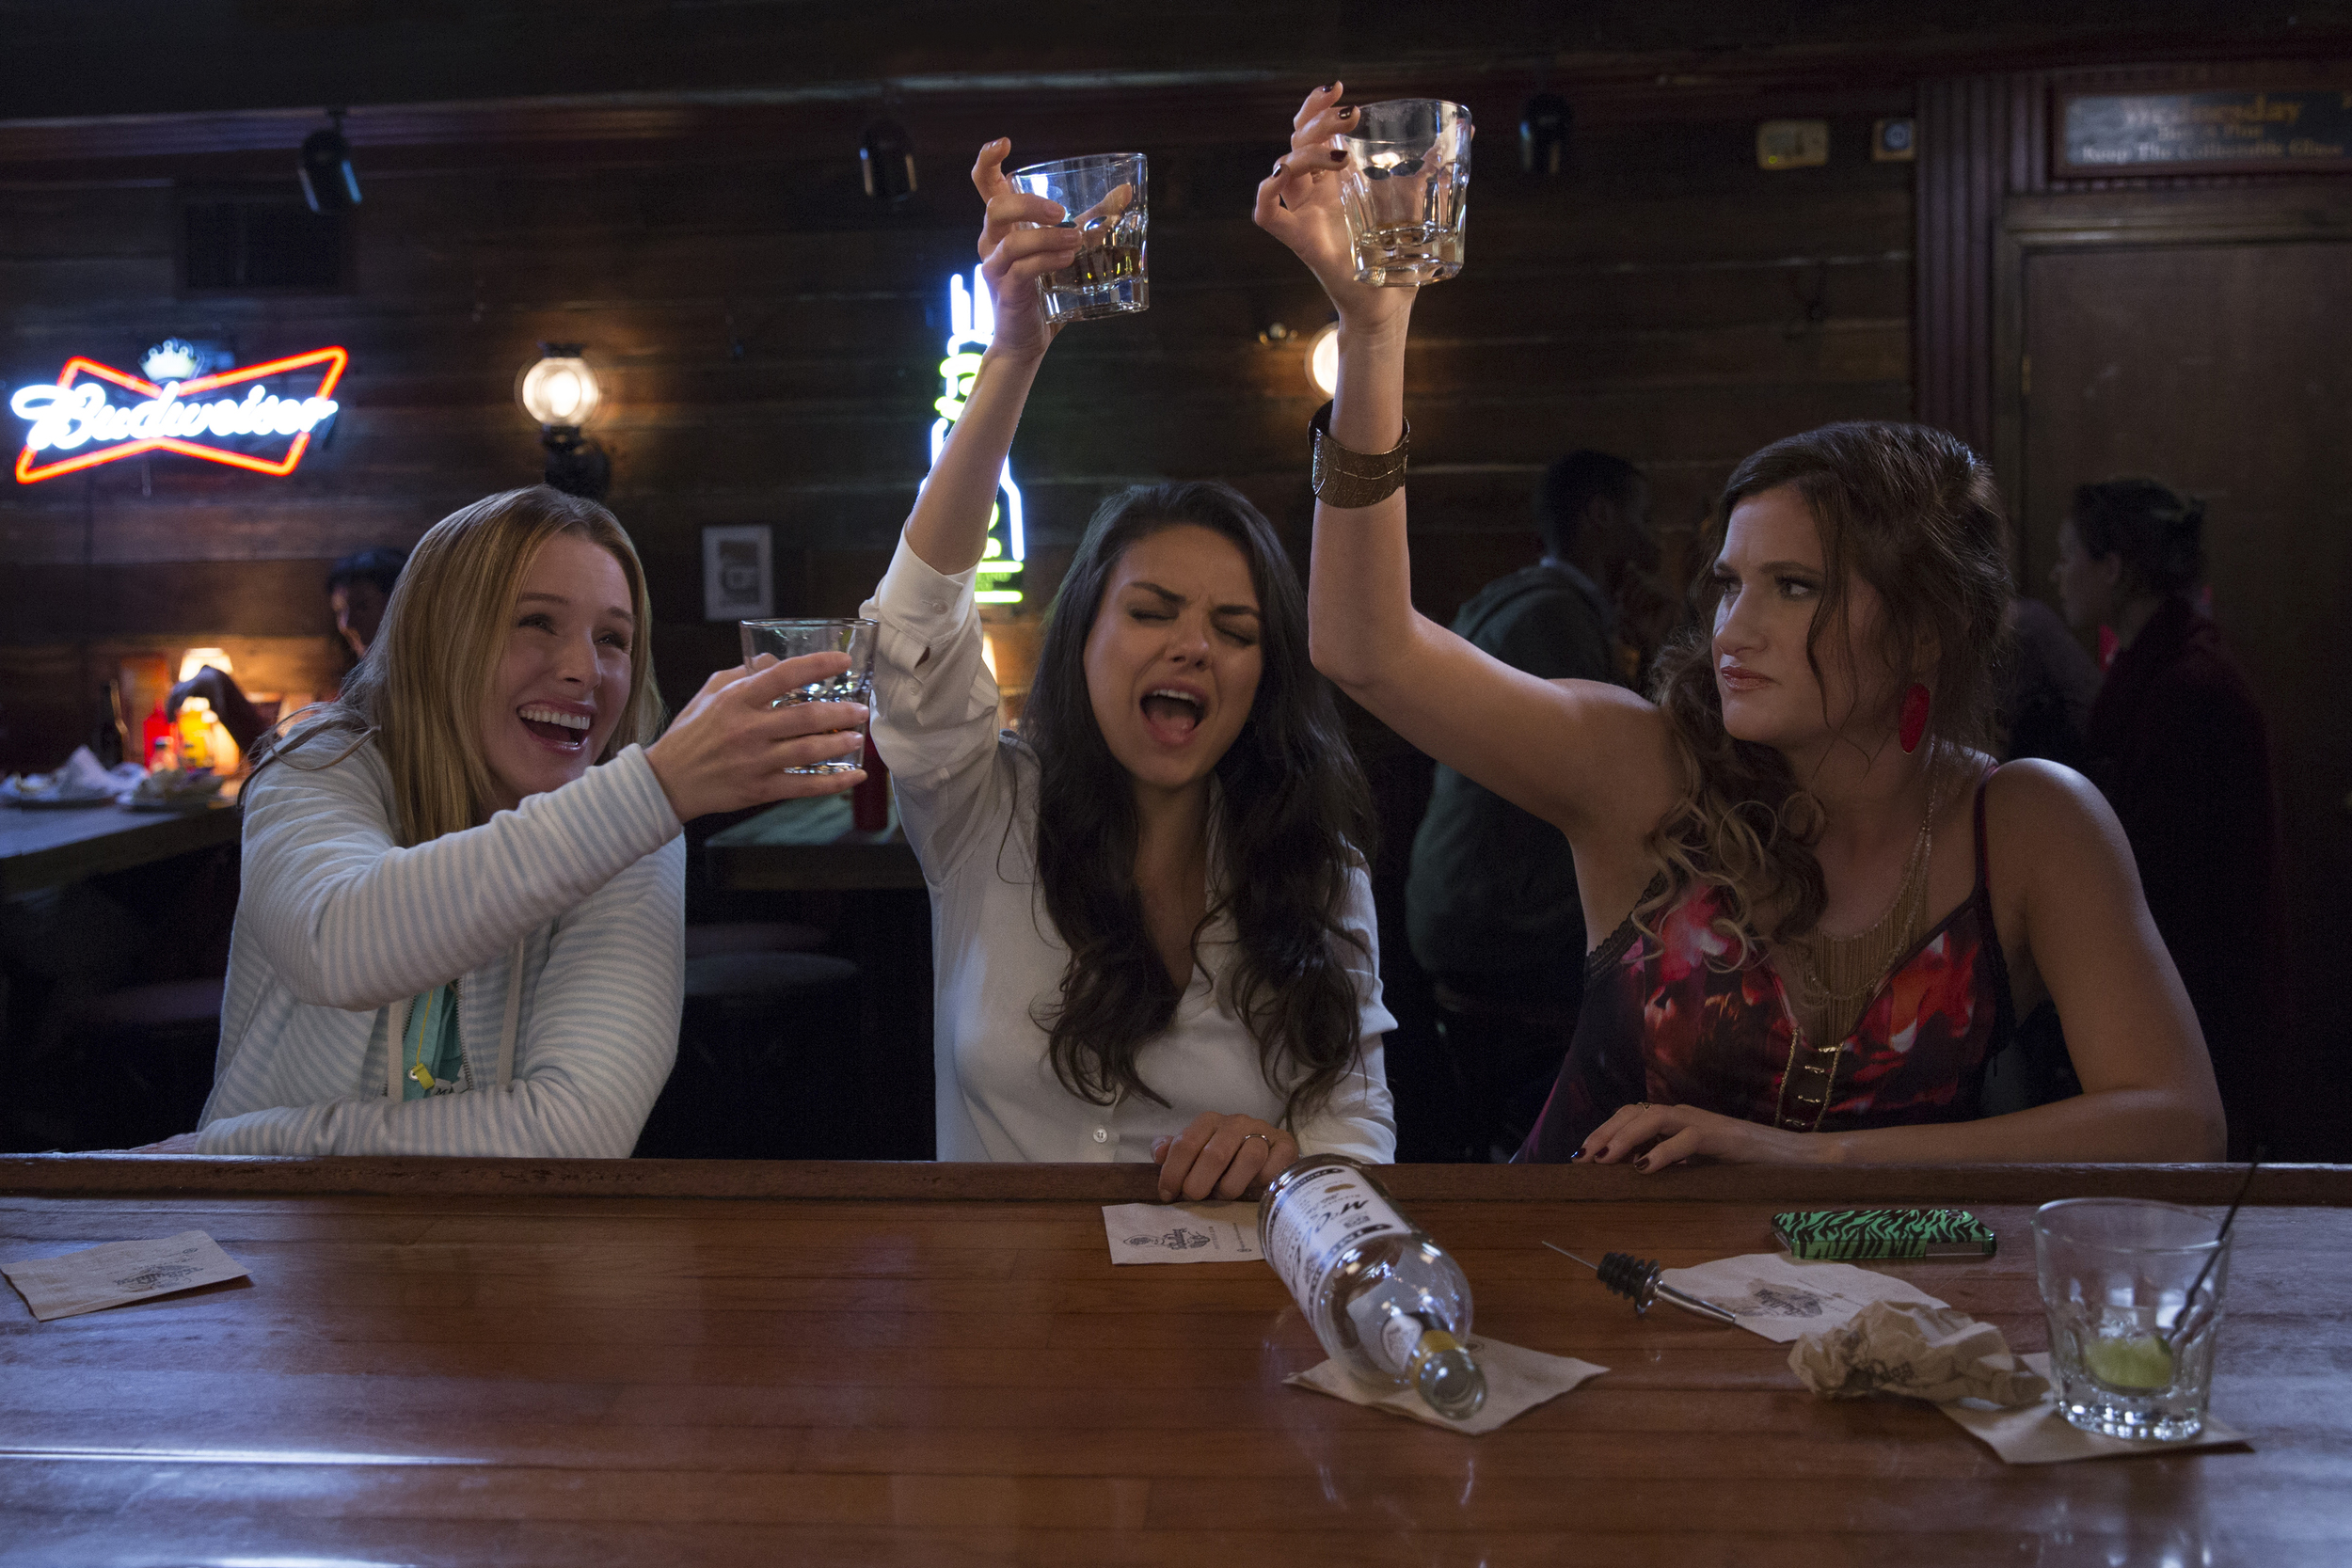 Bad Moms starring Kristen Bell, Mila Kunis, and Kathryn Hahn.